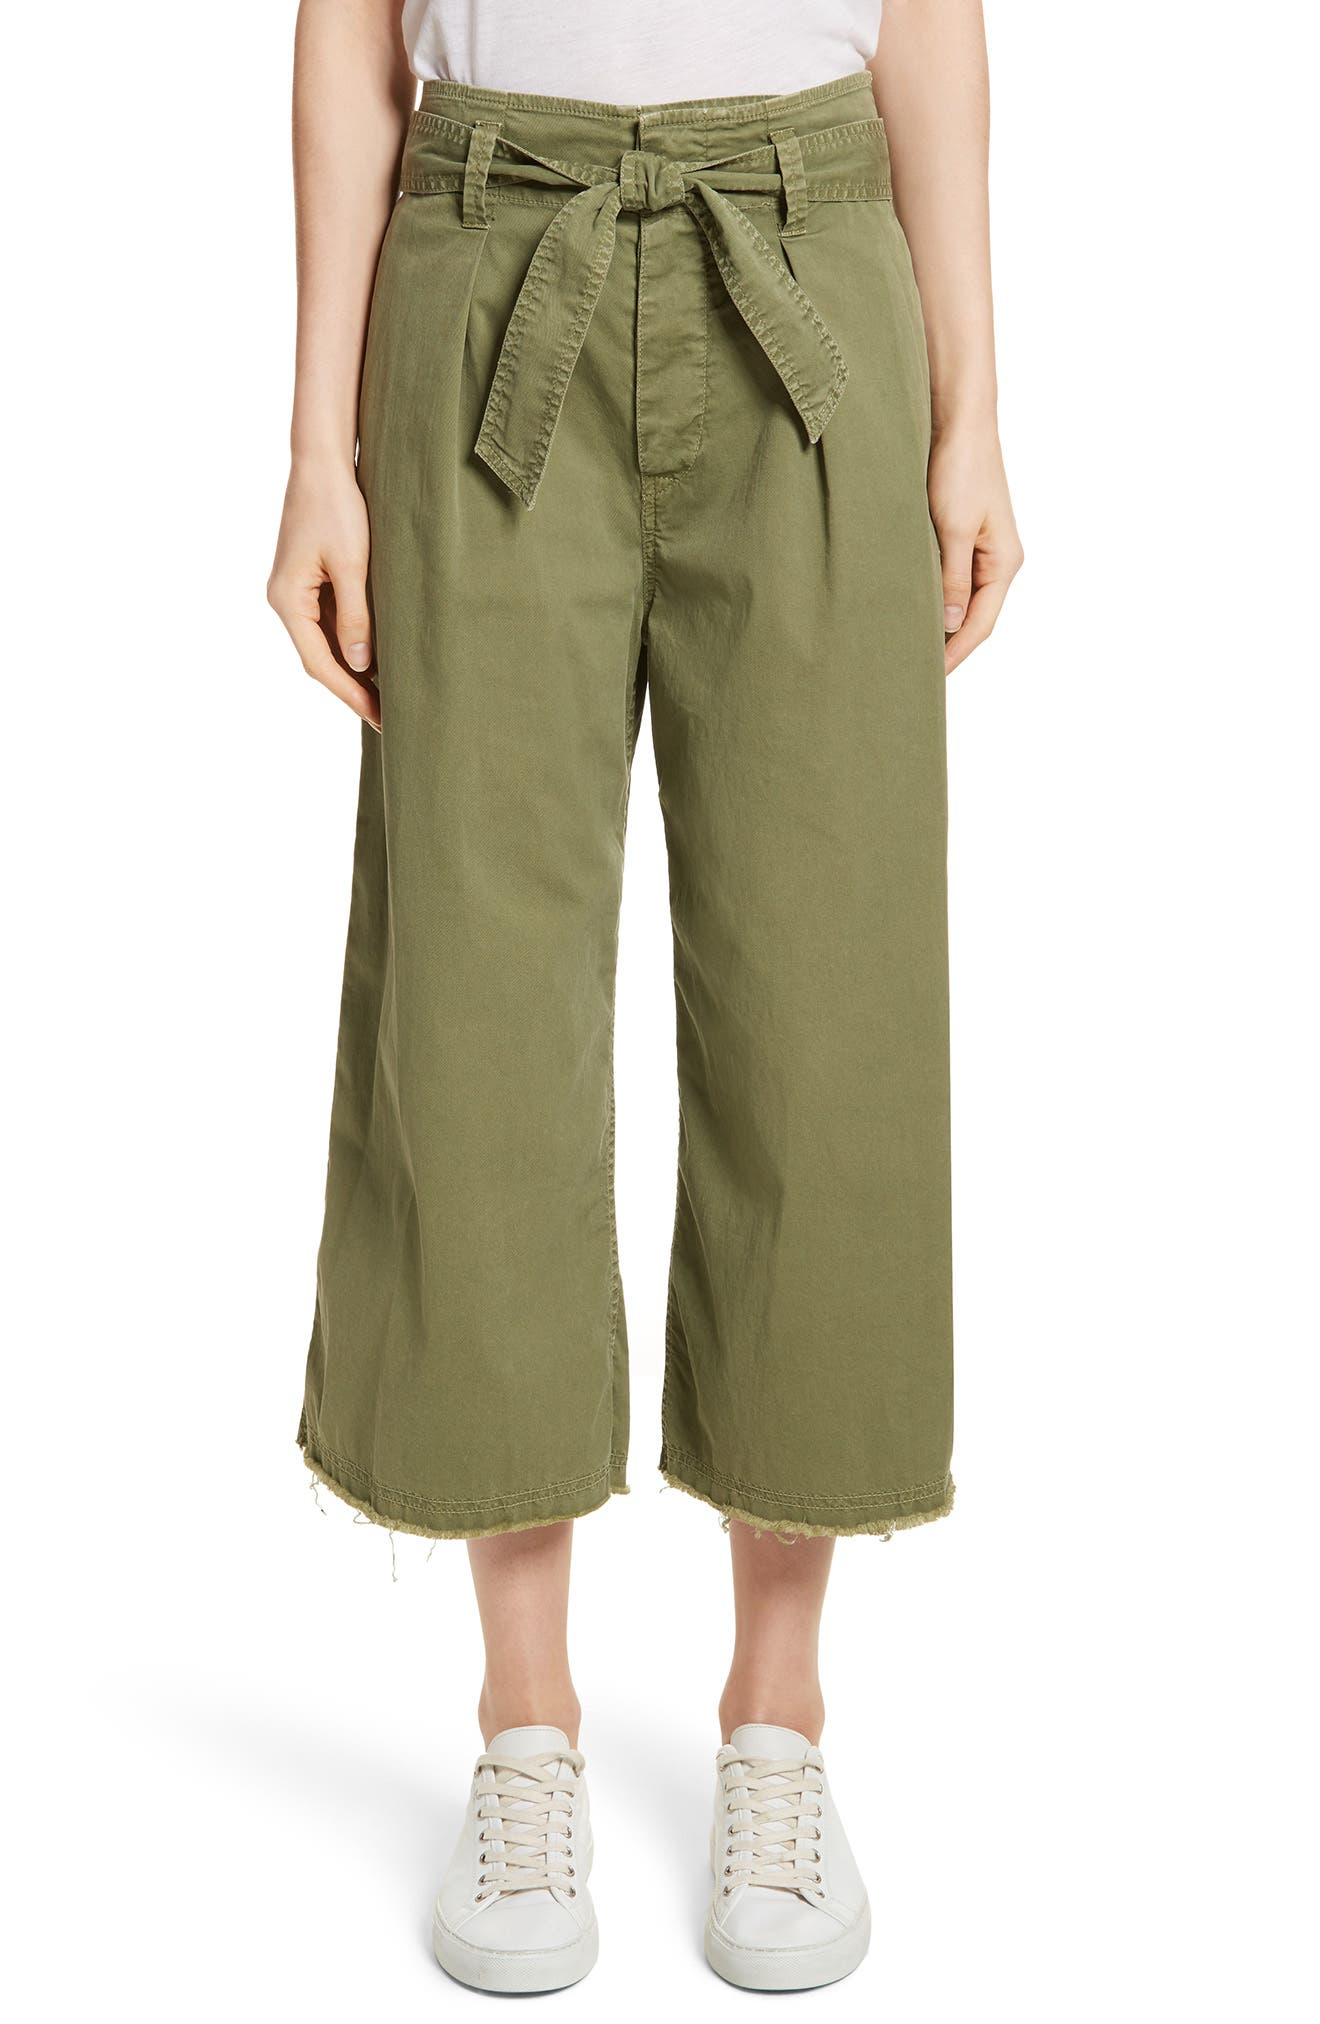 Ellie Drop Rise Culottes,                             Main thumbnail 1, color,                             Army Green